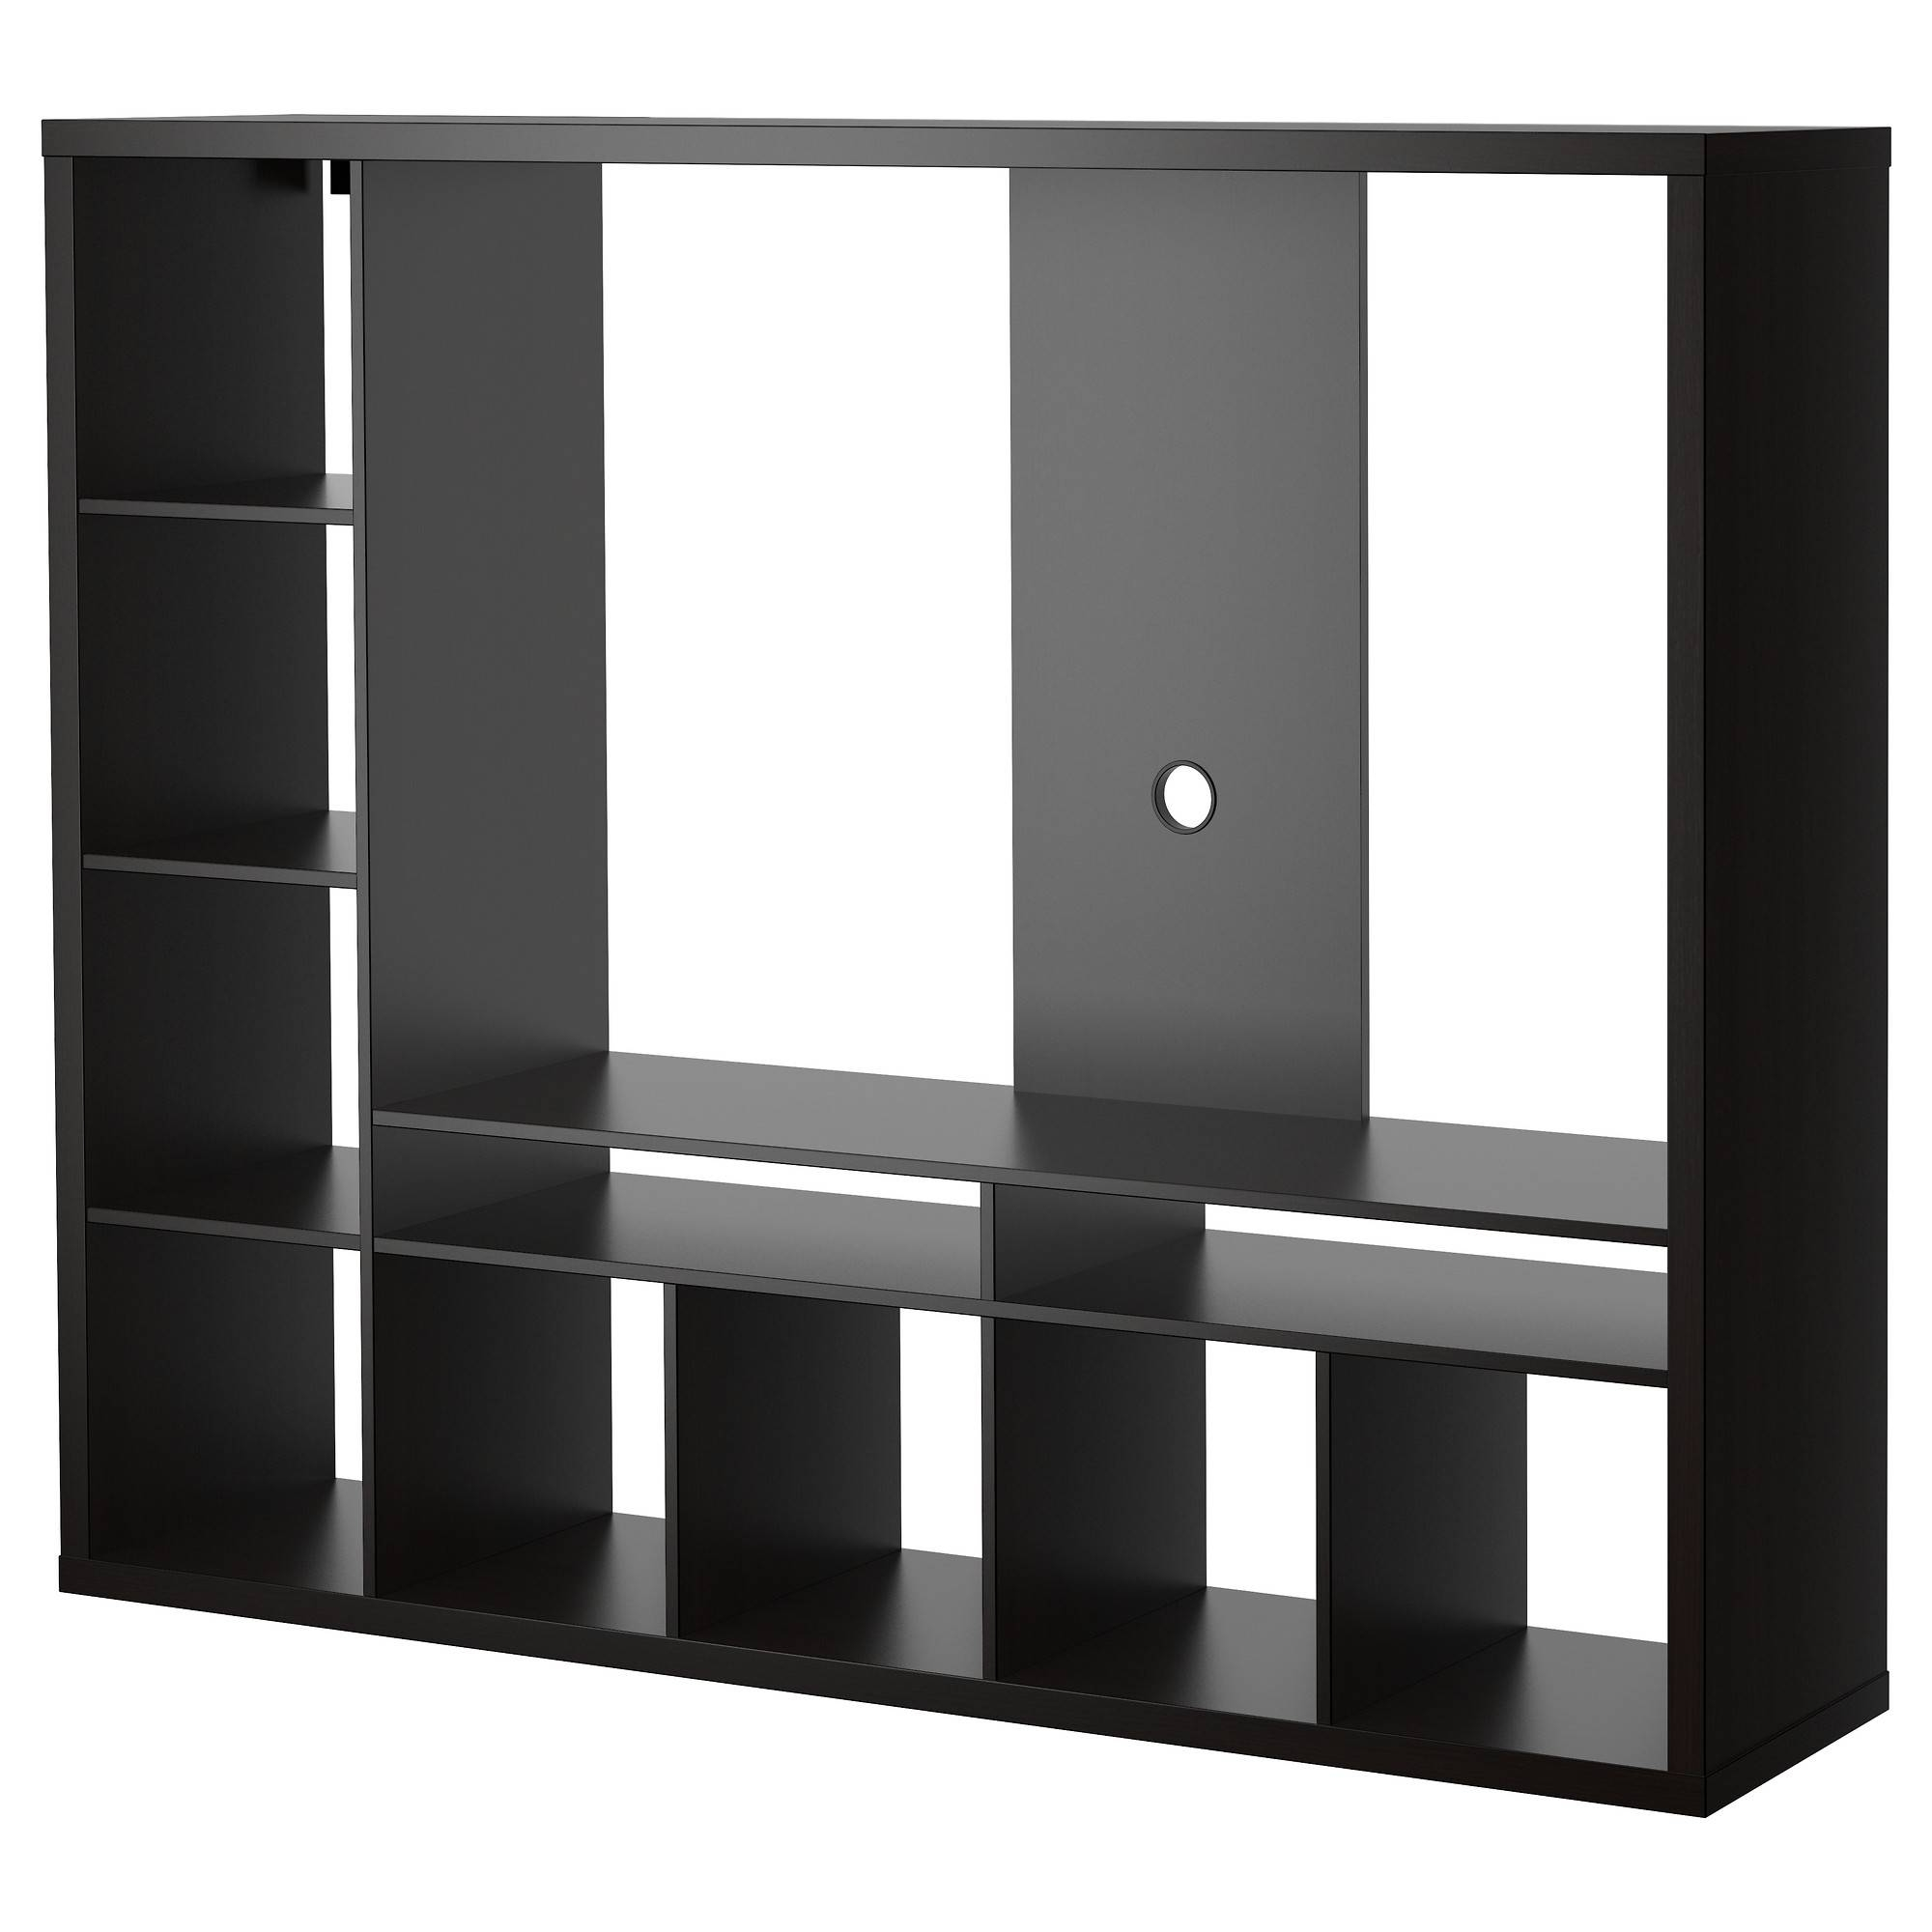 Lappland Tv Storage Unit - Black-Brown - Ikea inside Tv Stands And Bookshelf (Image 6 of 15)